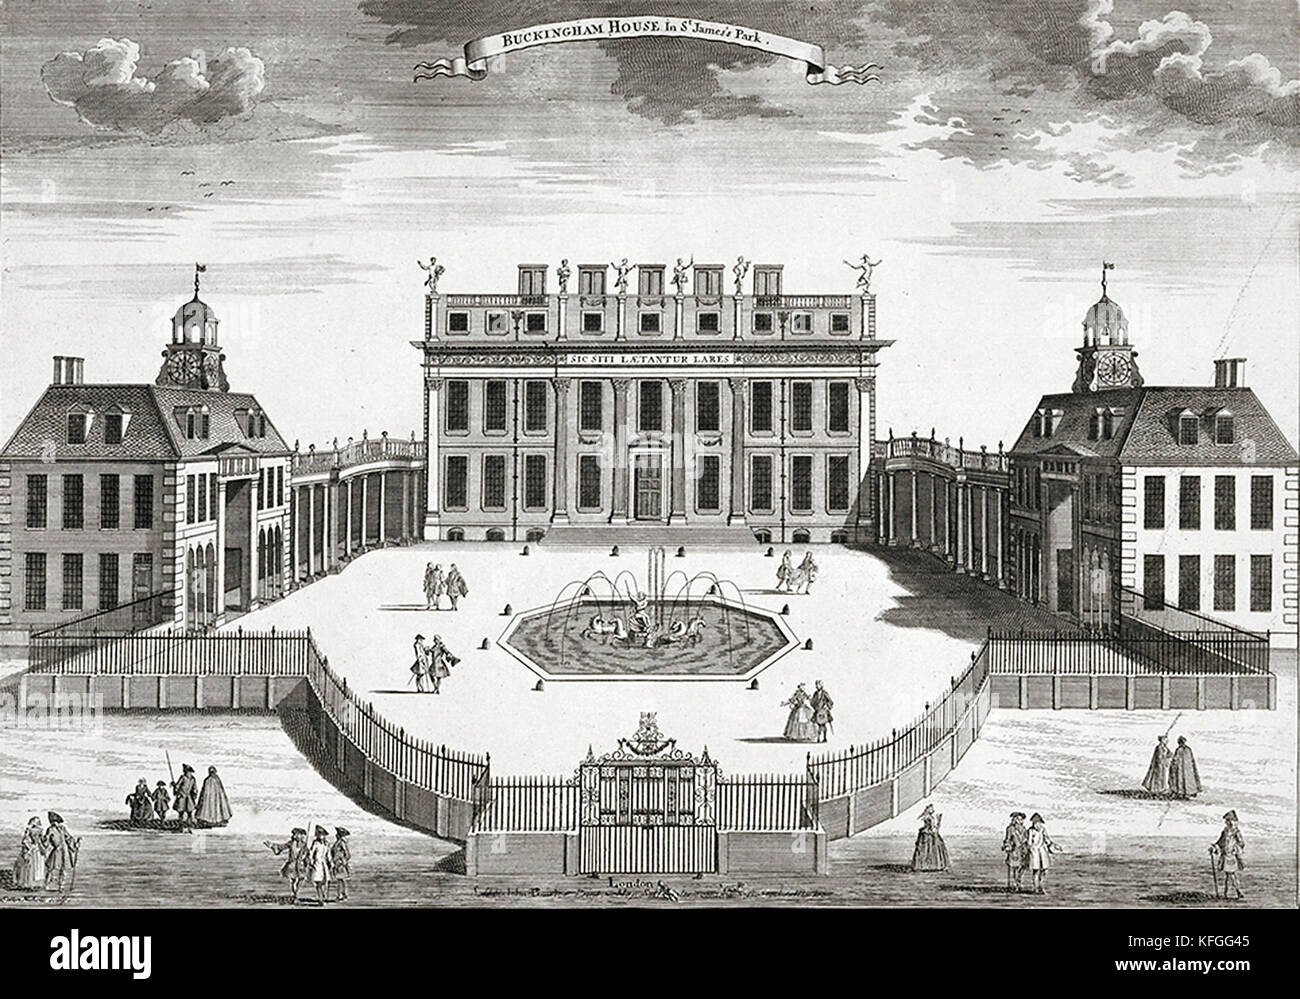 Buckingham Palace as it appeared in the early 18th century. - Stock Image